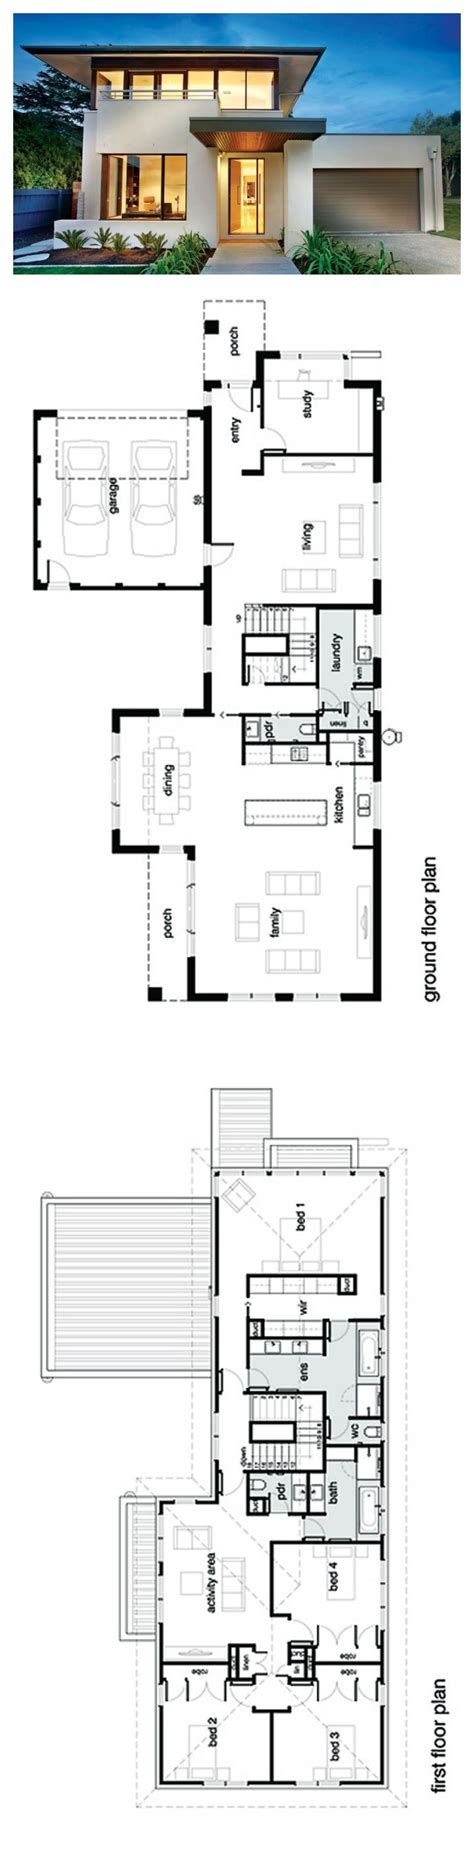 modern home design and floor plans the 25 best ideas about modern house plans on pinterest